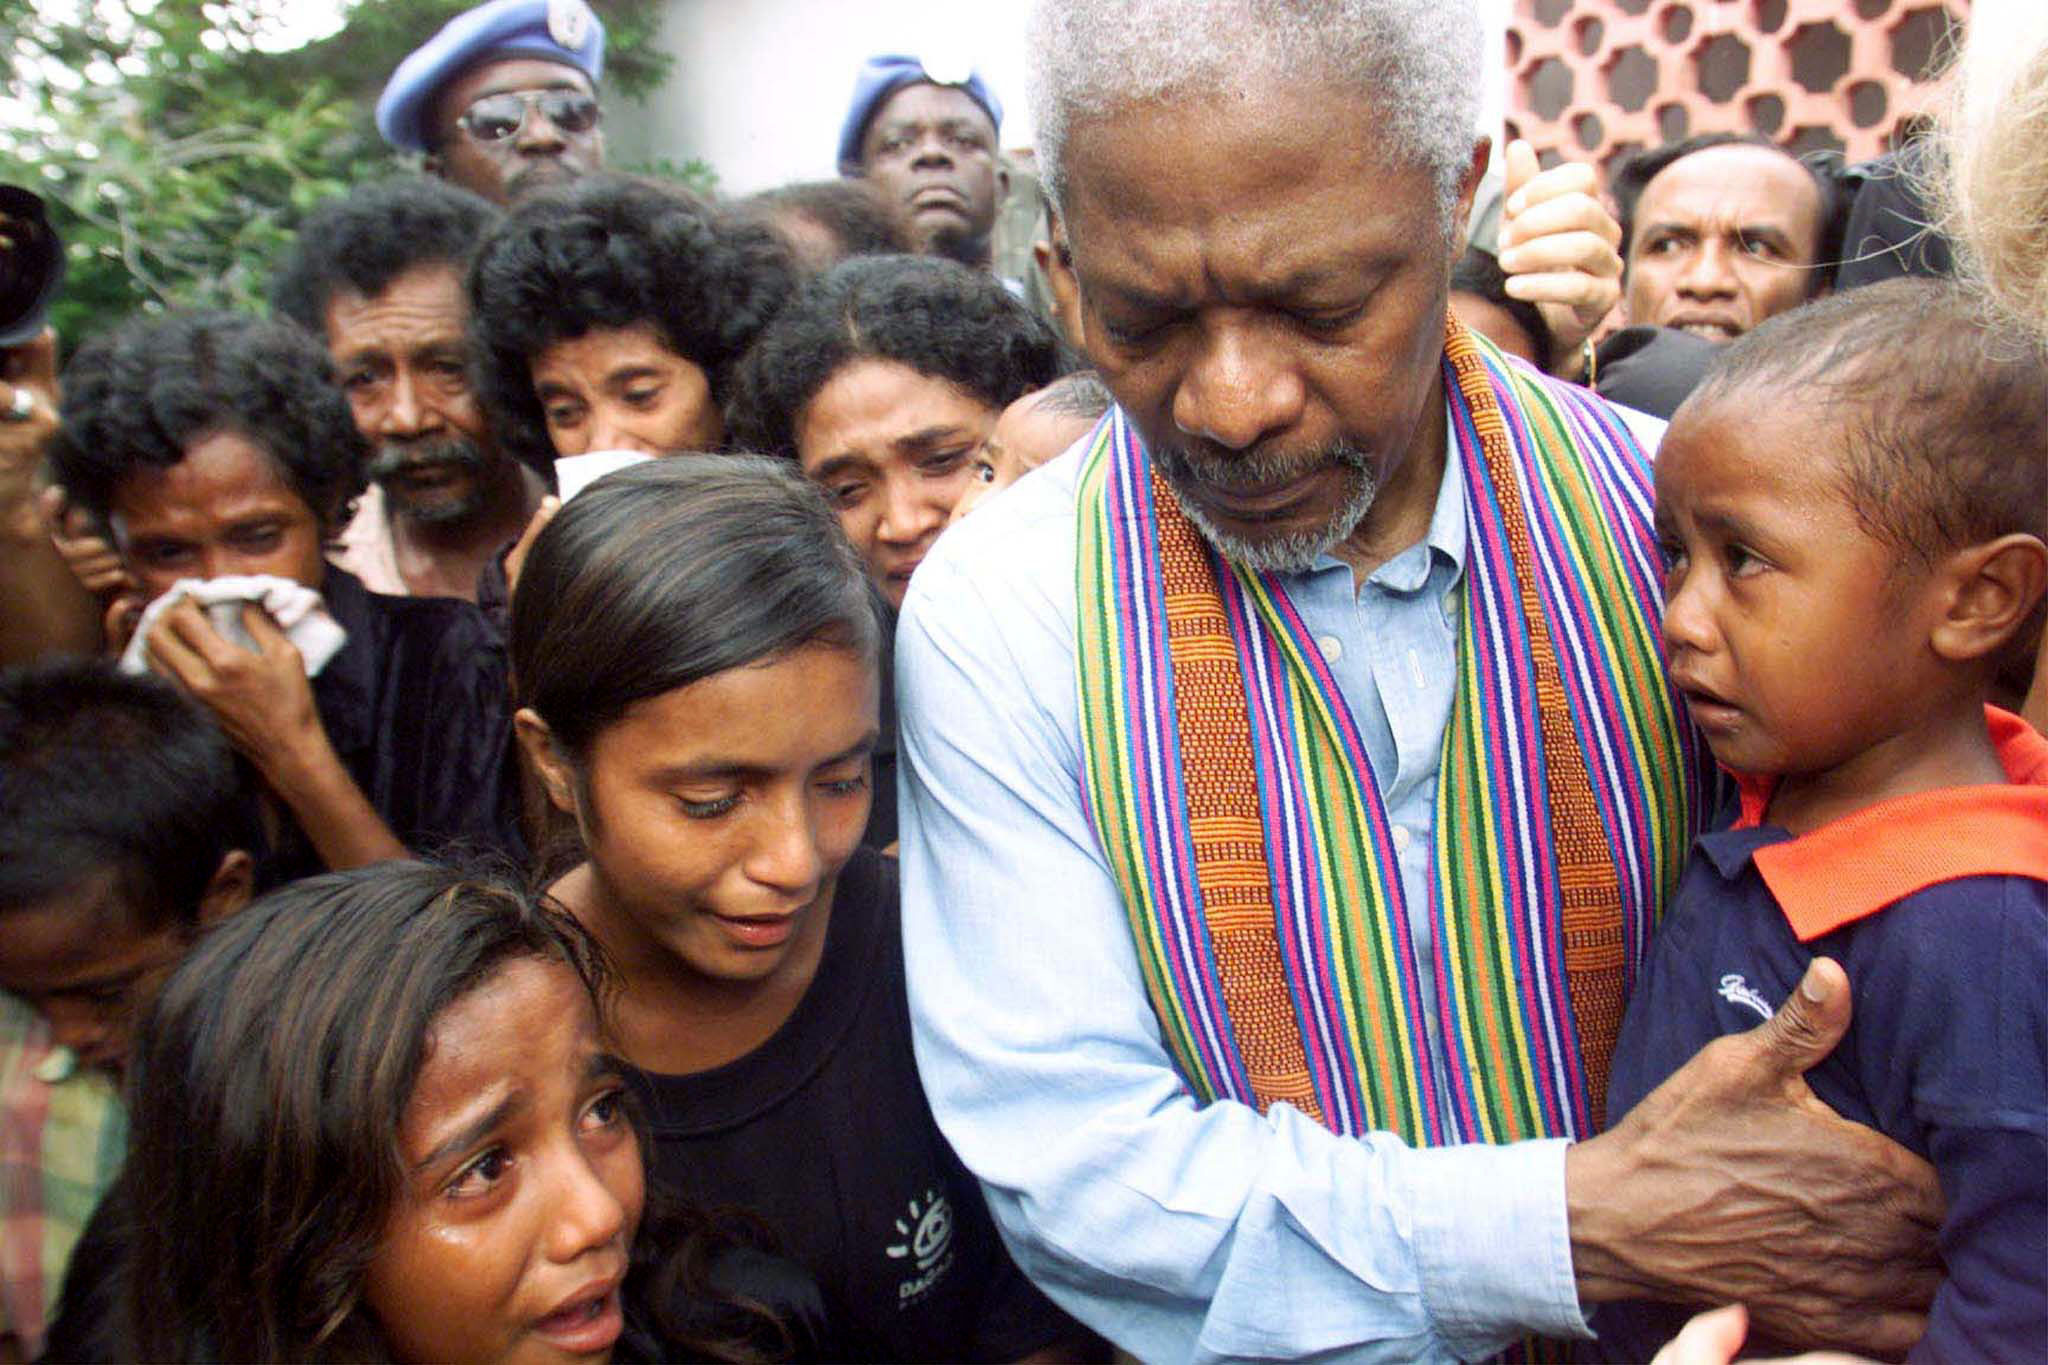 United Nations Secretary-General Kofi Annan consoles family members of victims of last April's massacre by pro-Indonesia militia in Liquisa, 30 km west of DIli February 17. At least 50 people were killed after pro-Indonesian militia and Indonesian soldiers attacked hundreds of refugees seeking shelter in a church compound. - PBEAHULNMCC